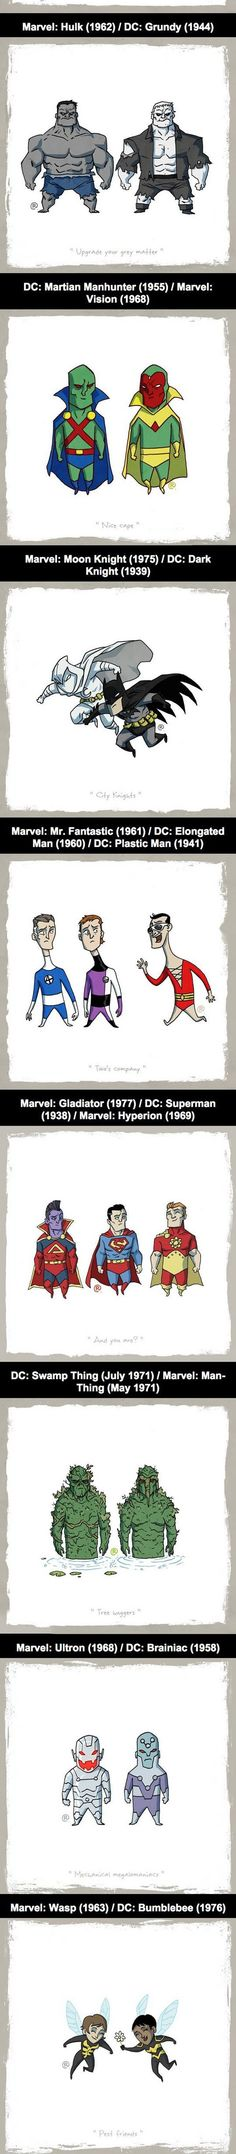 Marvel Vs DC: Equivalent Characters - The Meta Picture